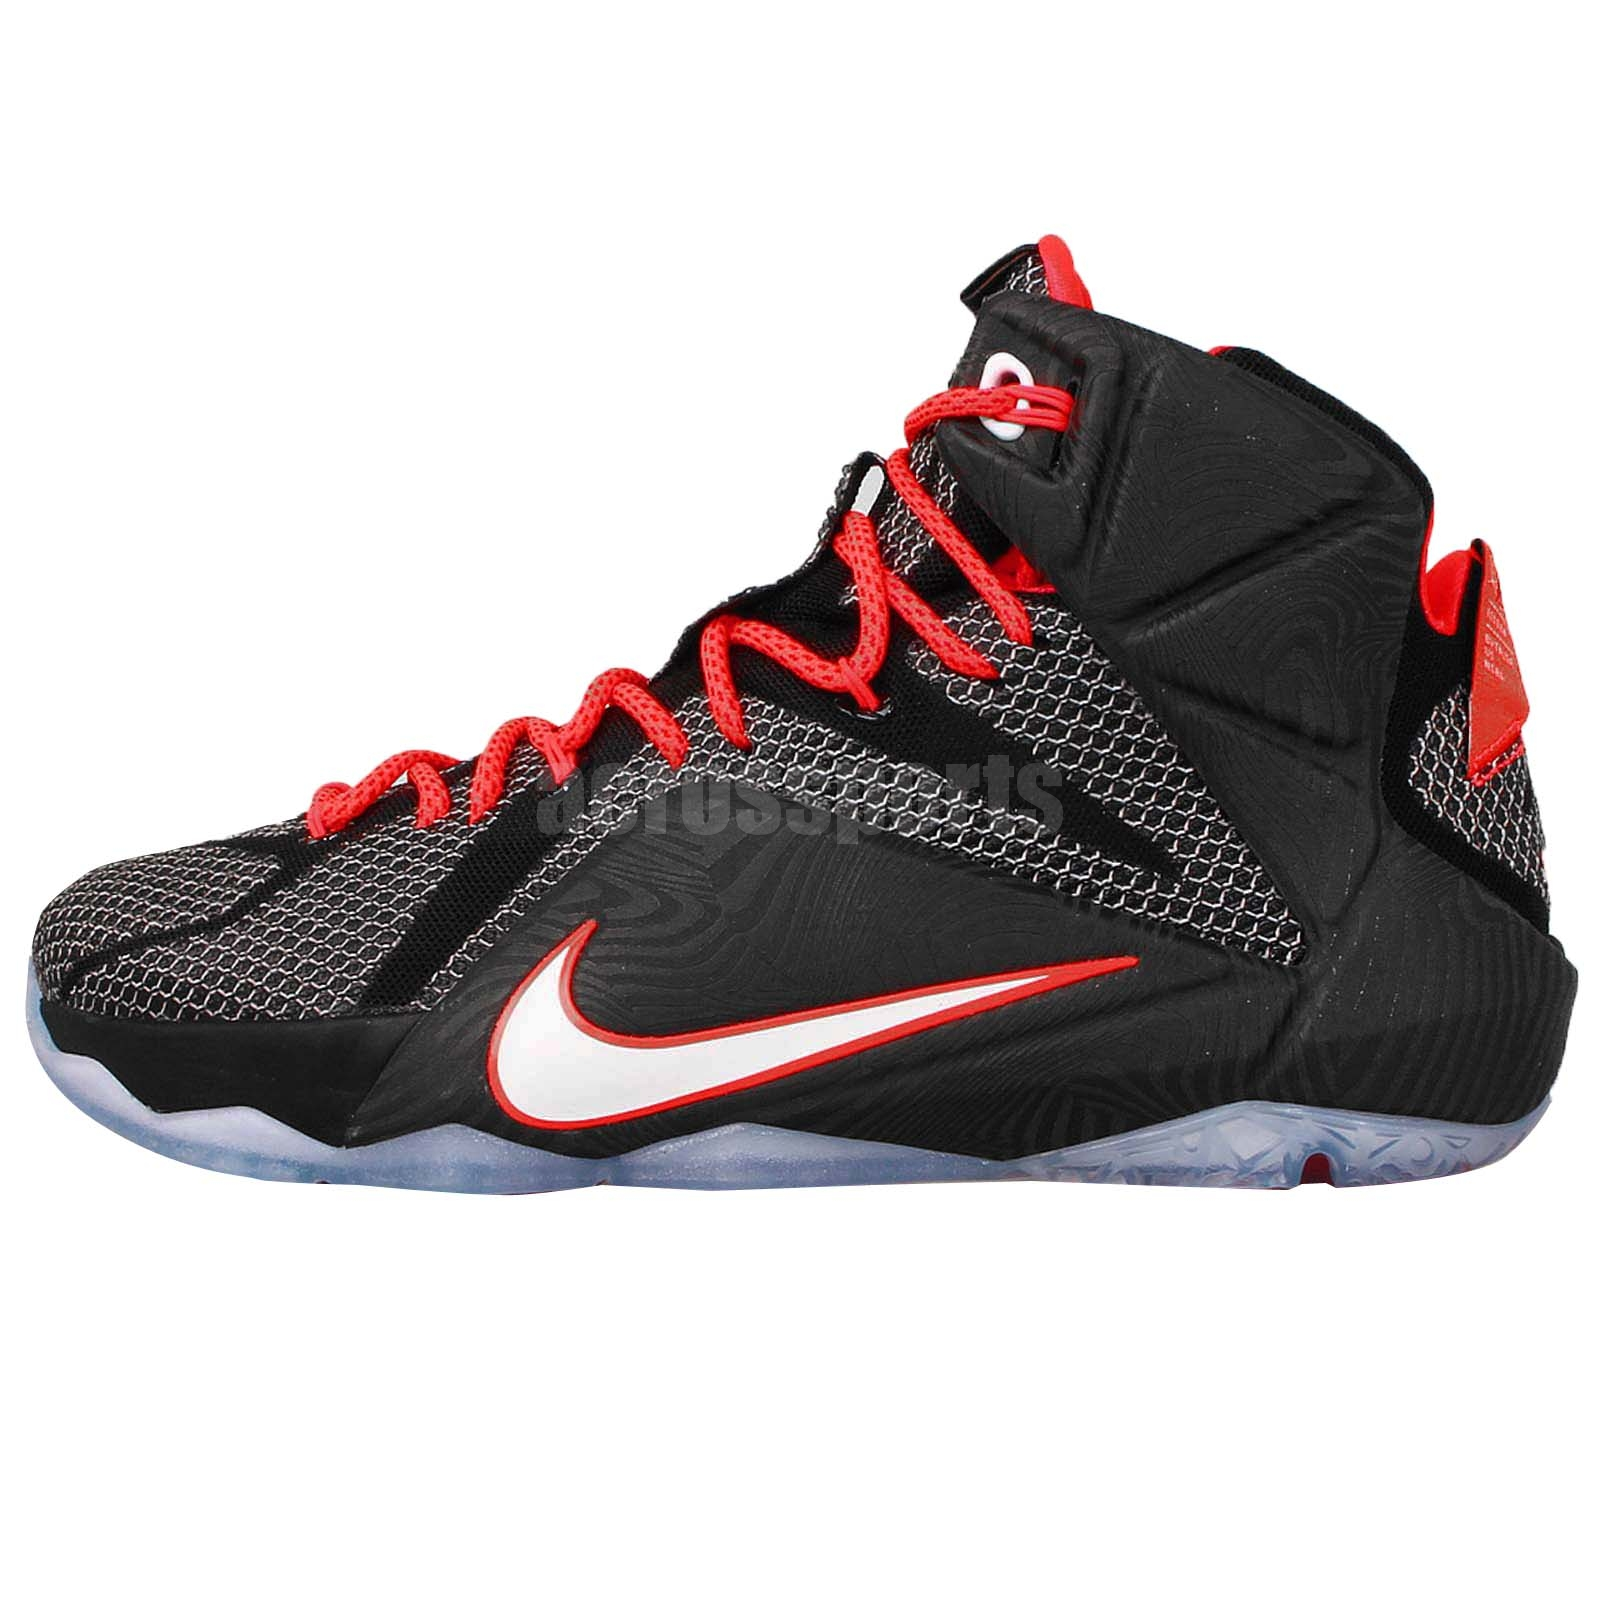 Lebron James On Court Shoes   The River City News